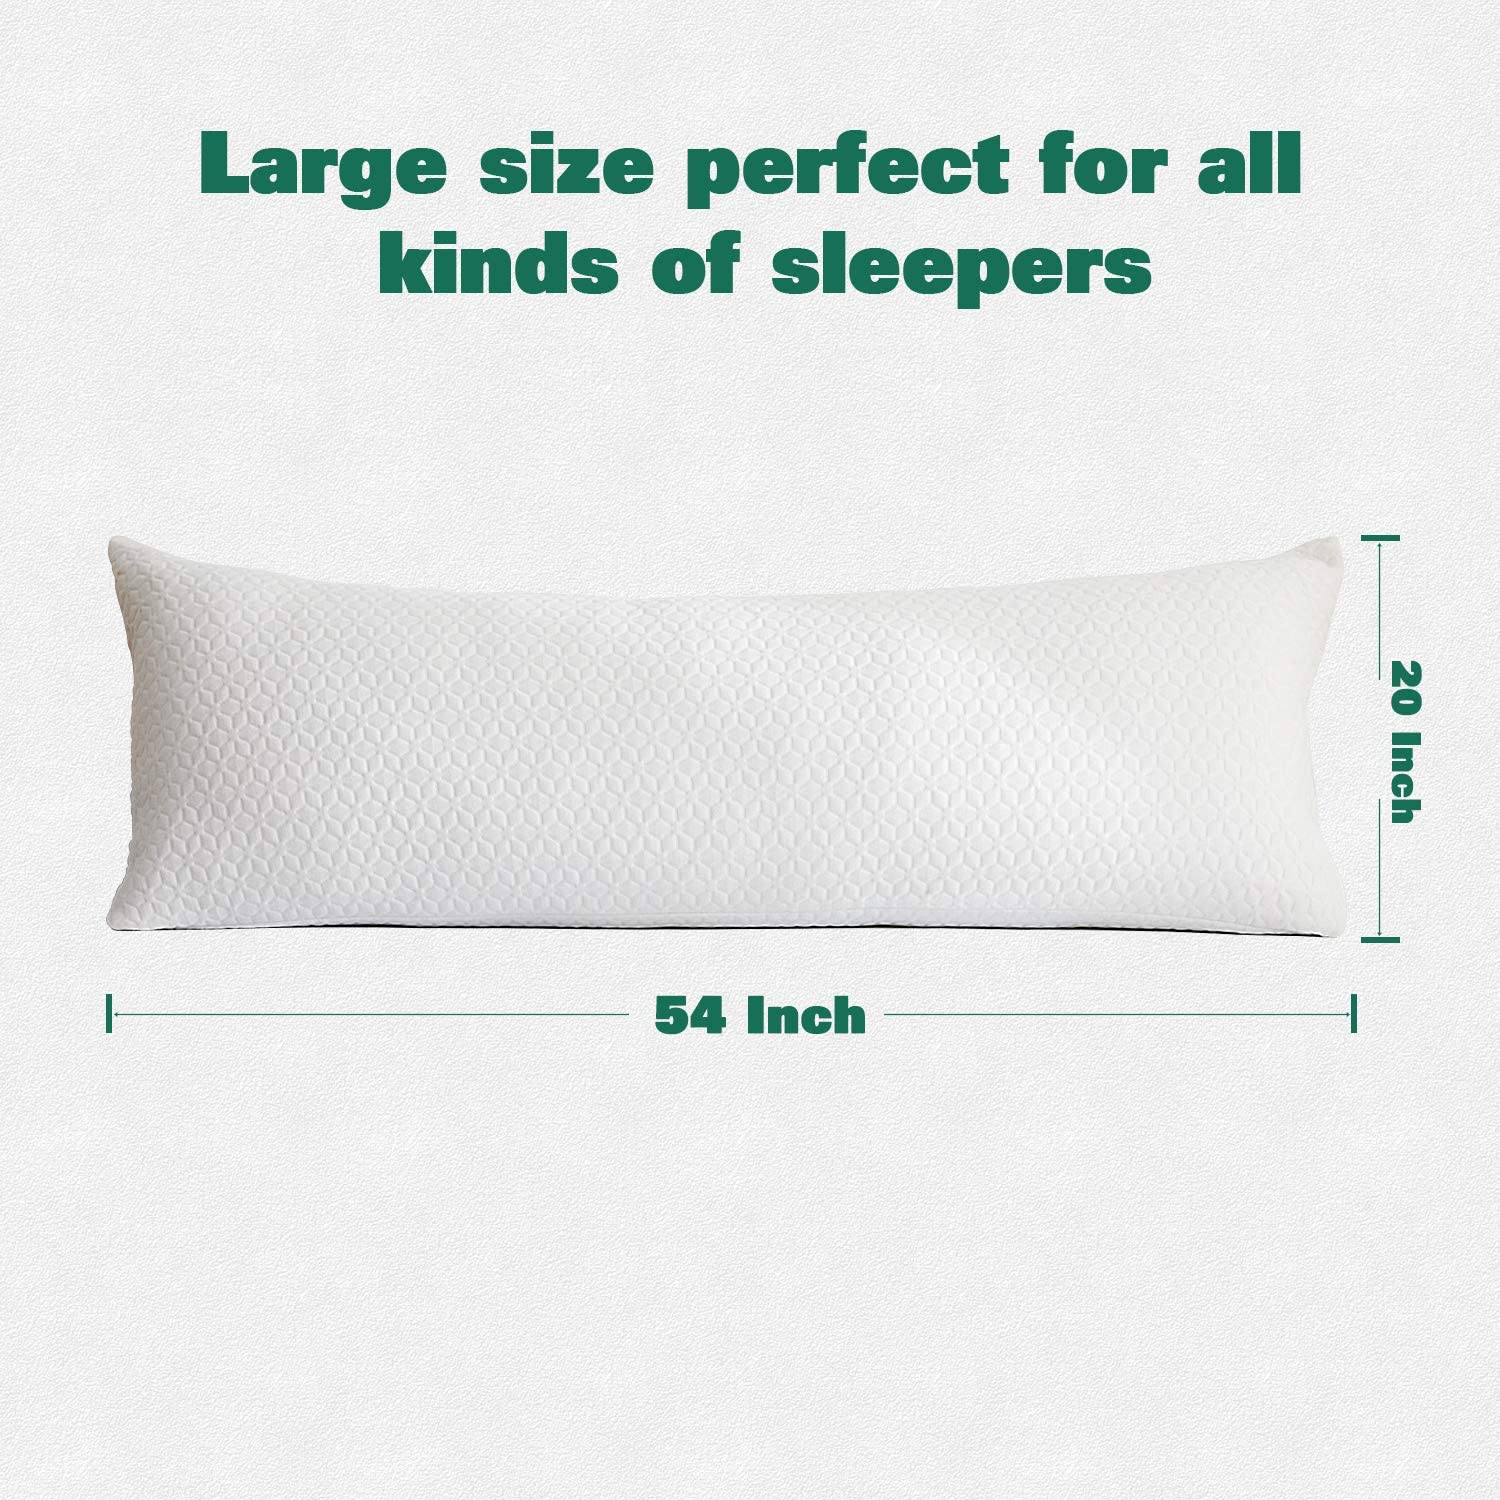 Yalamila Full Body Pillow Set for Adults, Soft Long Bed Pillow, Body Piilows Set with Pillowcase, Removable Zippered Bamboo Cover Cooling Breathable, 20x54 inch, Body Pillow Insert with Cover: Home & Kitchen